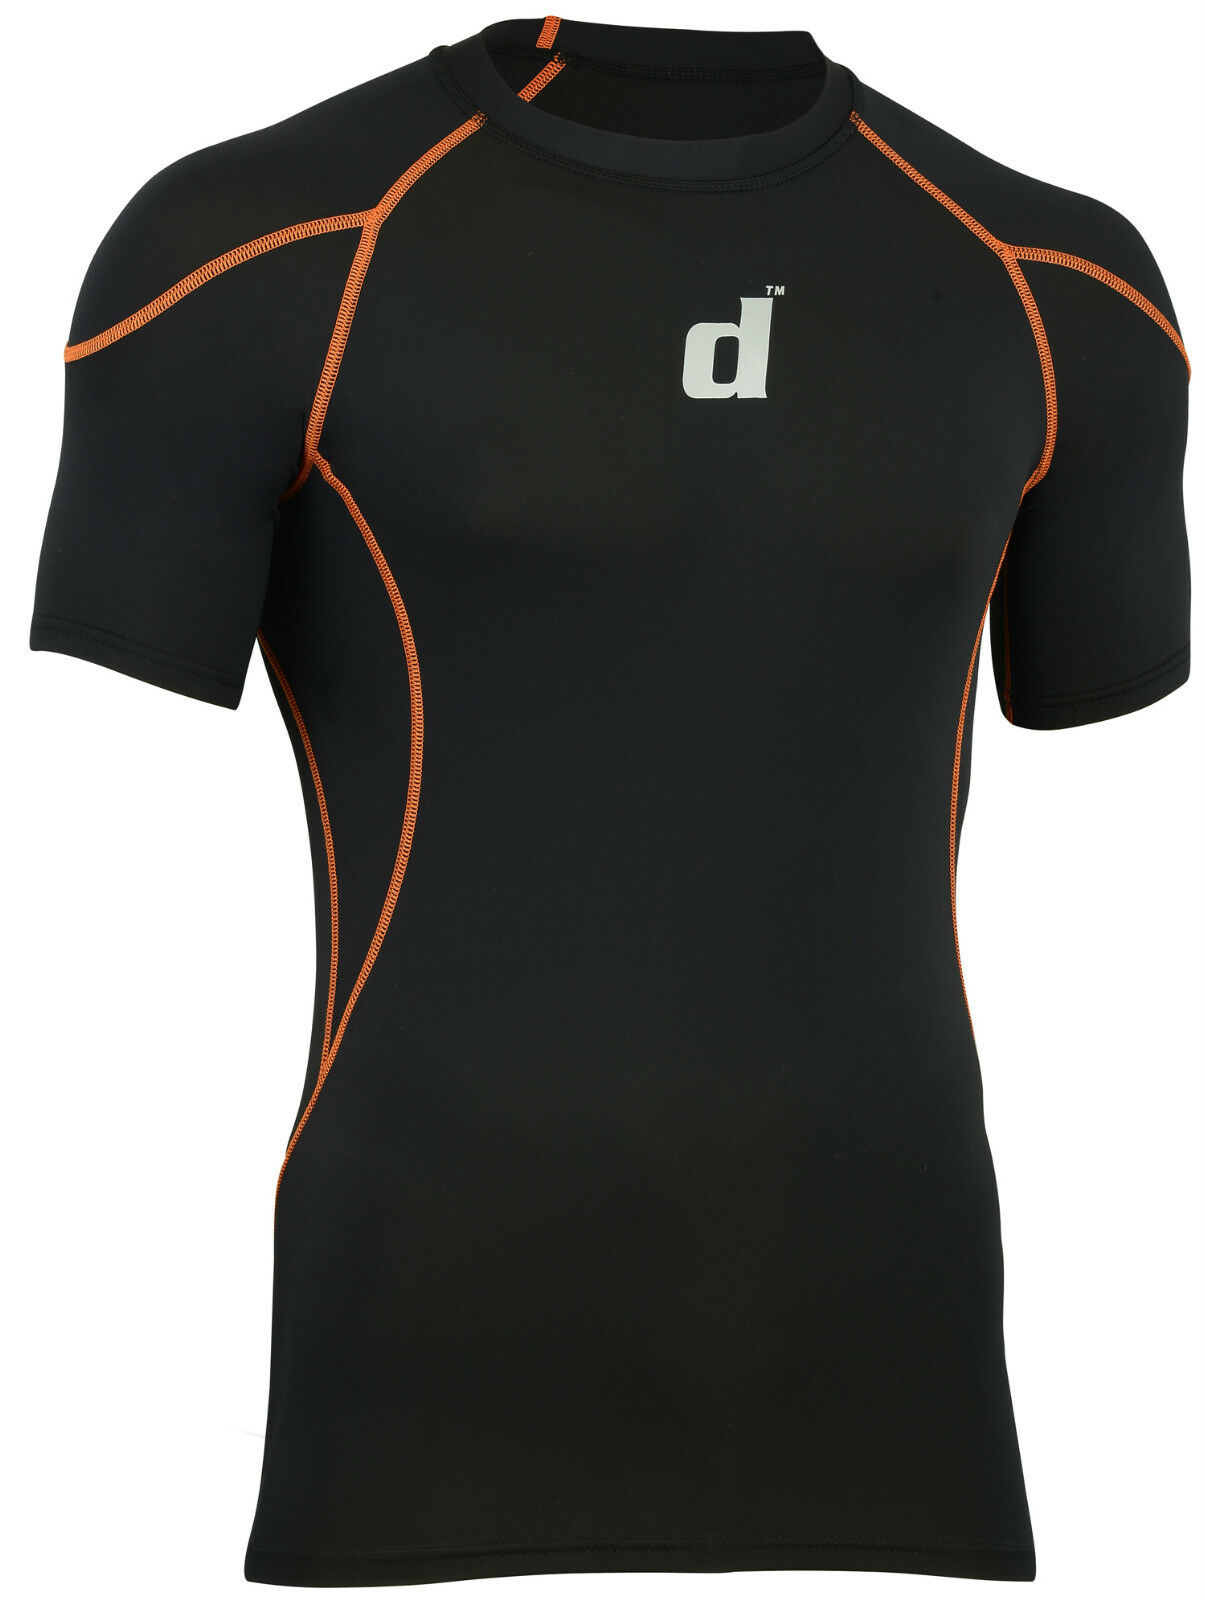 Didoo Men's Boys Compression Armor Base Layers Half Sleeves Top Tight Fit  Shirts | eBay